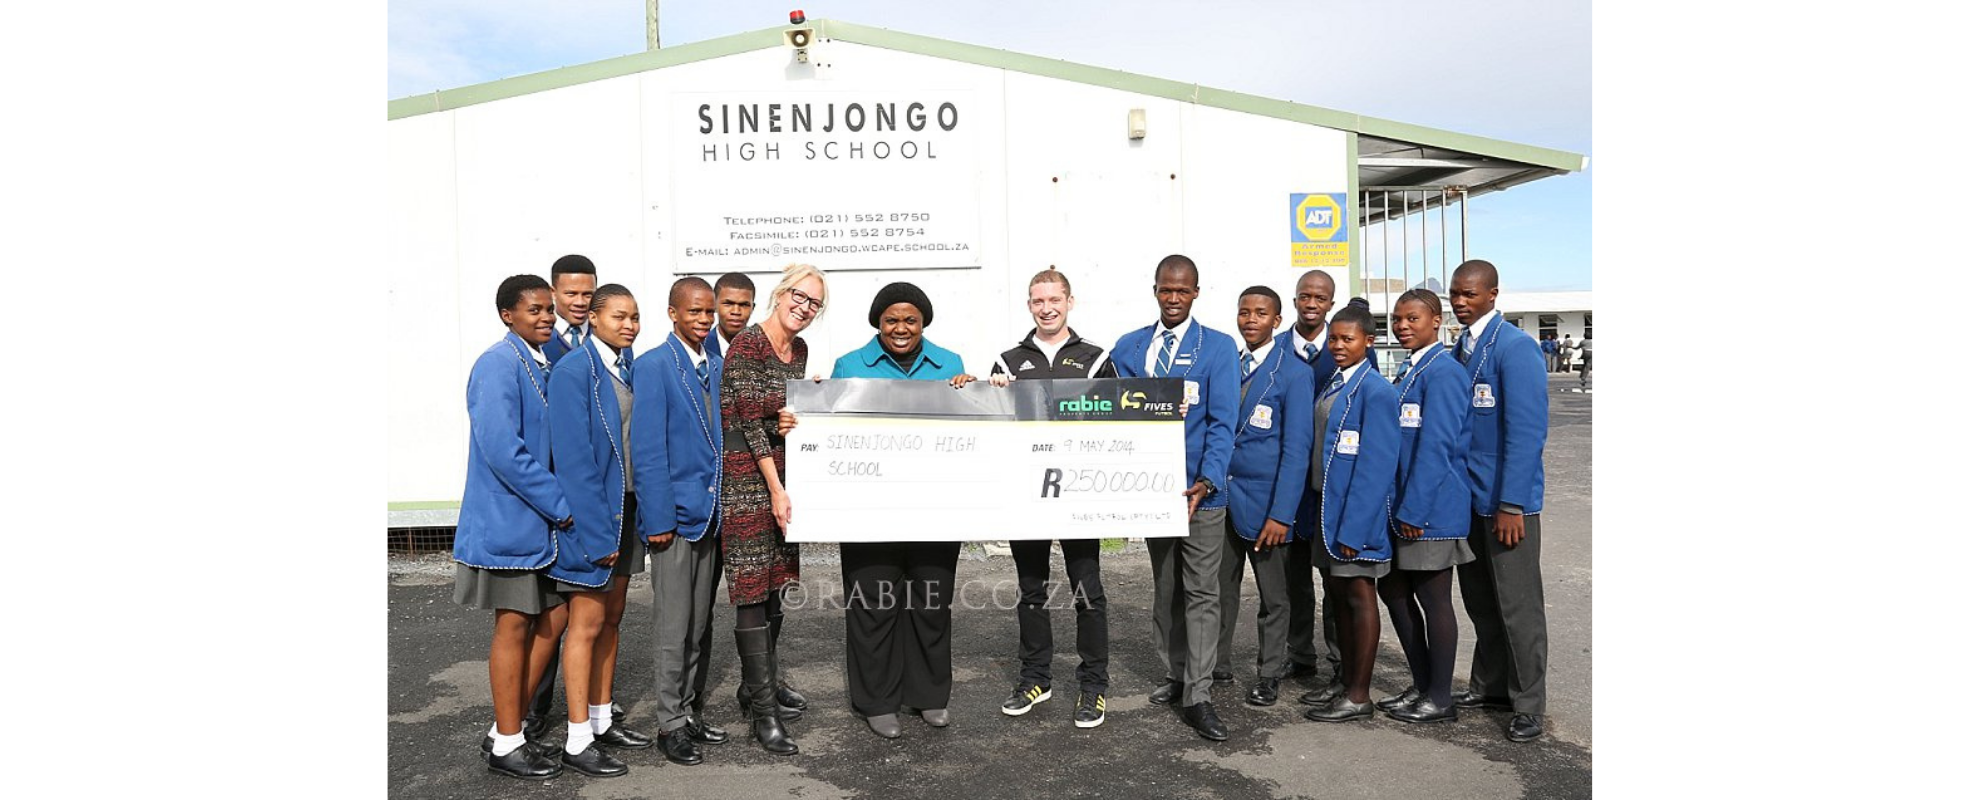 Maggie Rowley Sinenjongo Assistance Fund, Maggie Rowley's legacy honoured with Fund for Sinenjongo students, Rabie.co.za